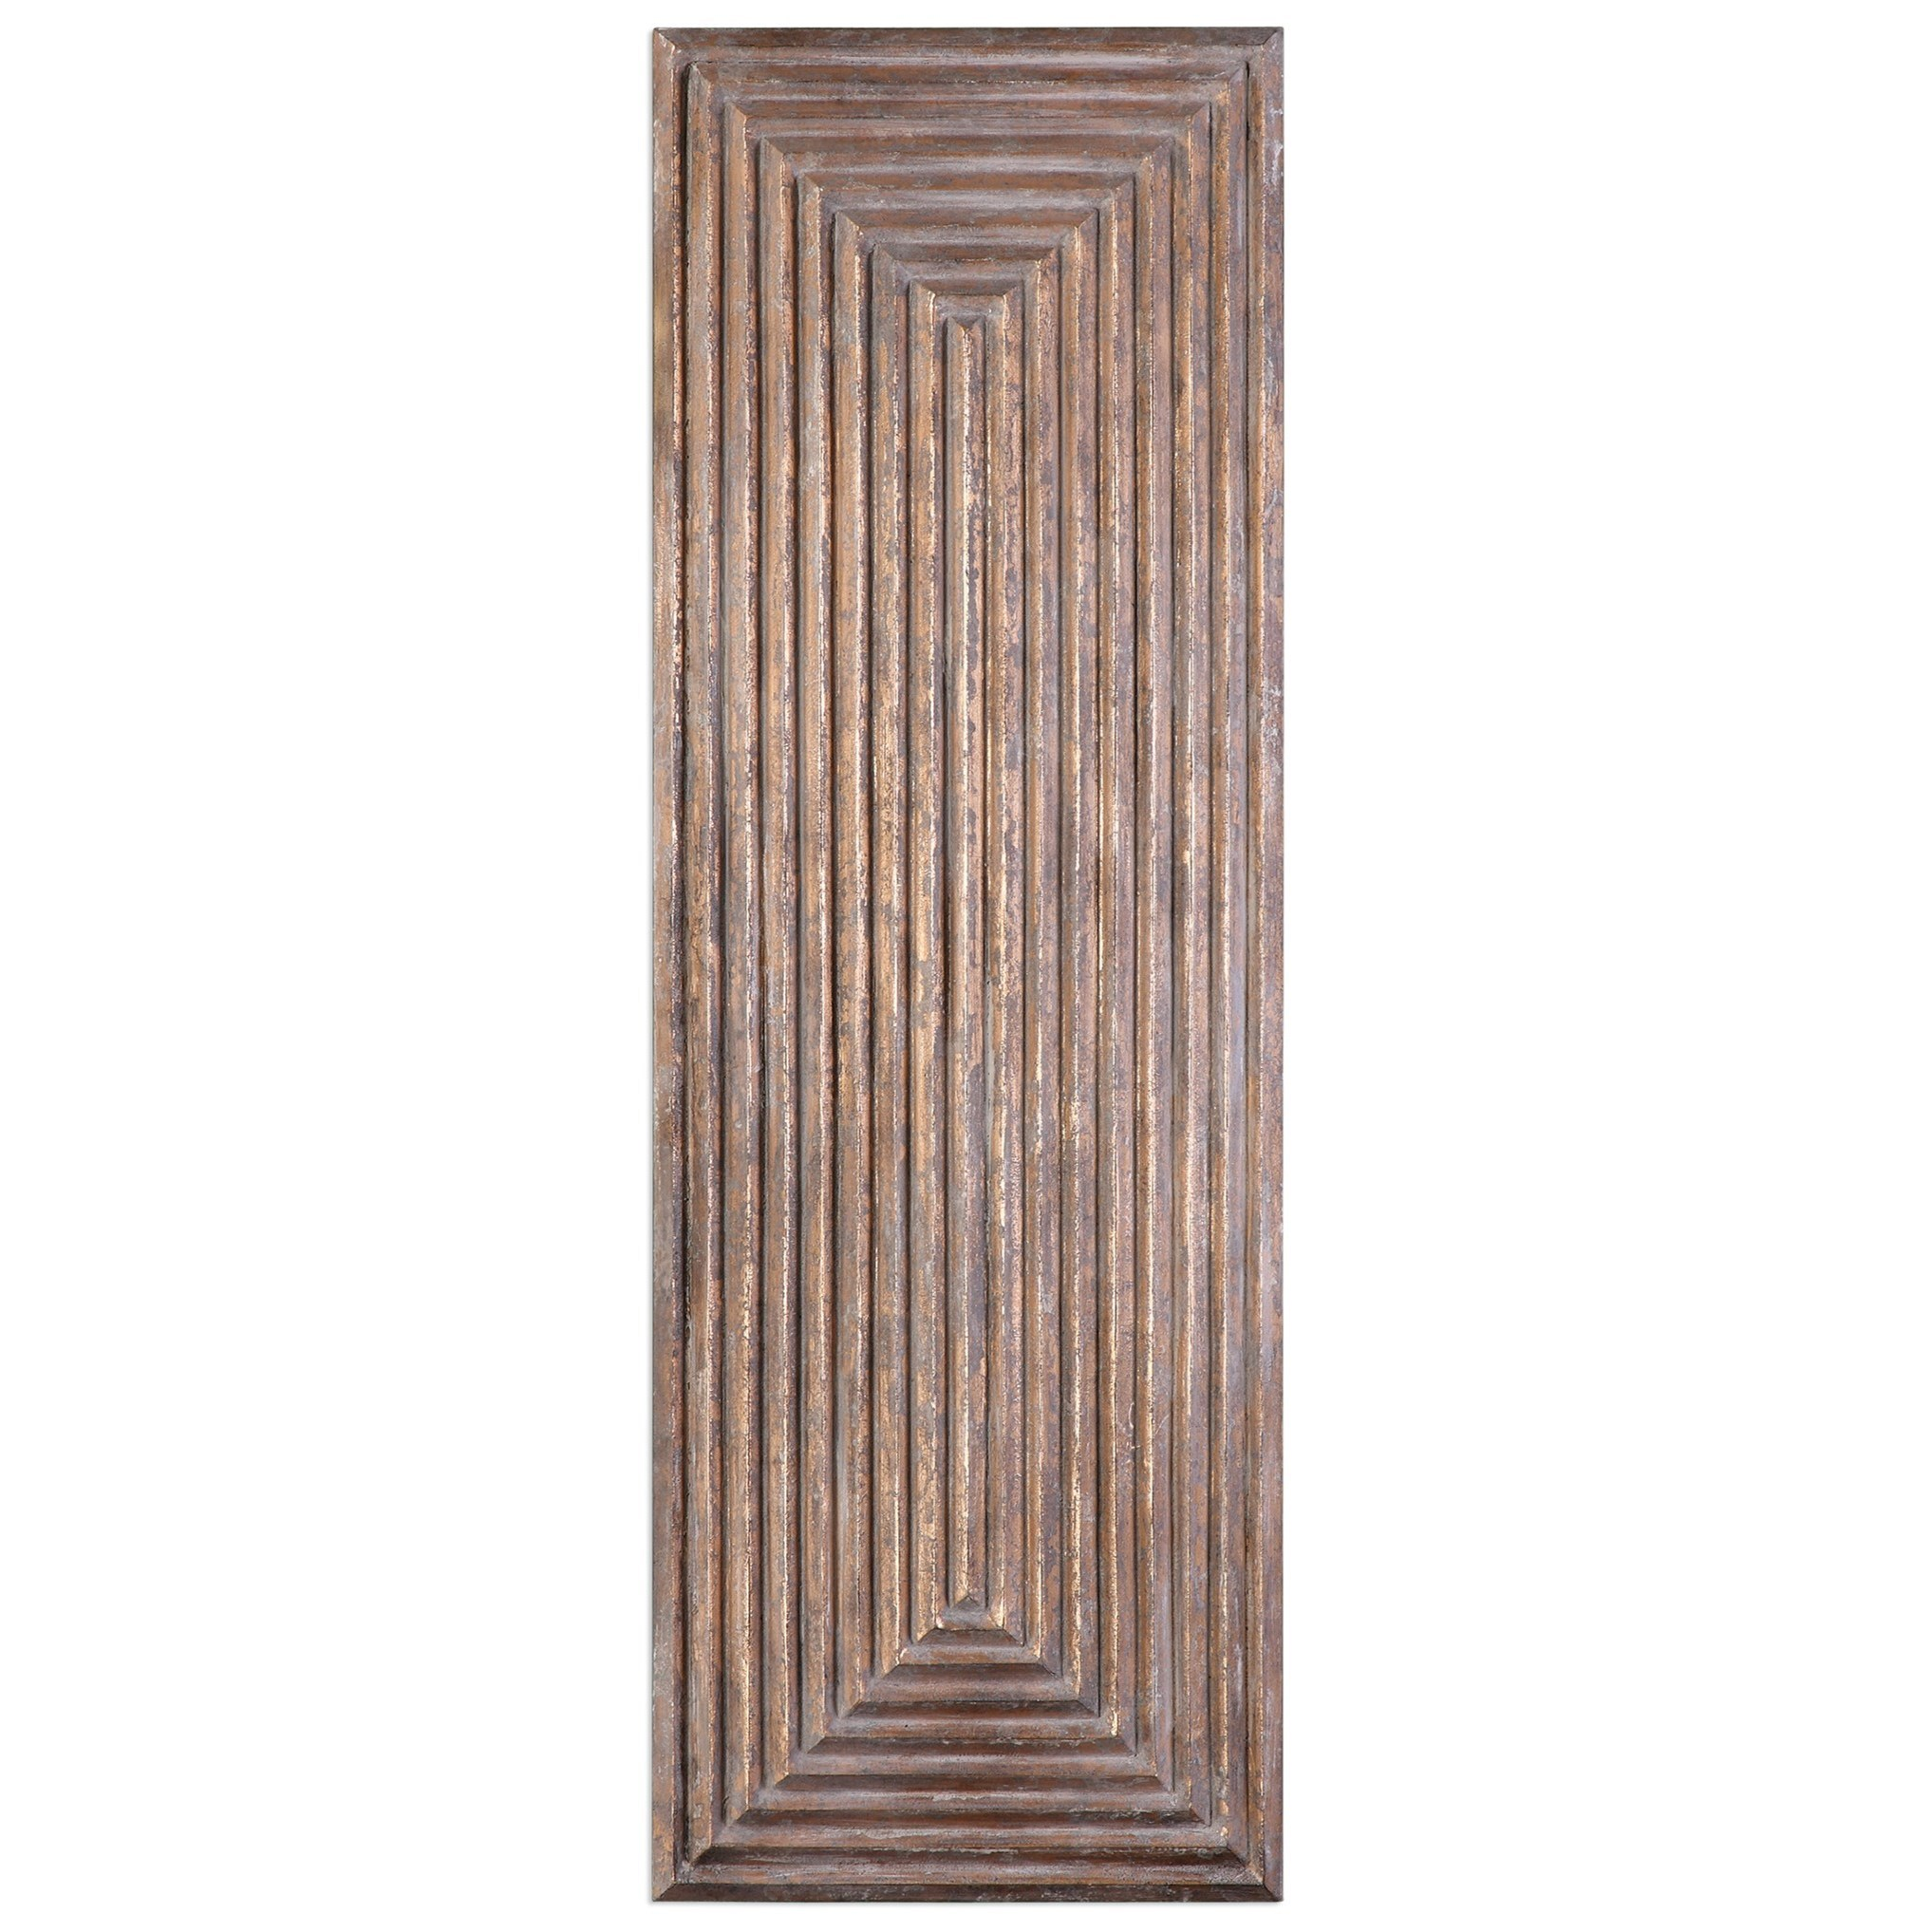 Uttermost alternative wall decor lokono panel wayside furniture uttermost alternative wall decor lokono panel item number 04060 amipublicfo Gallery